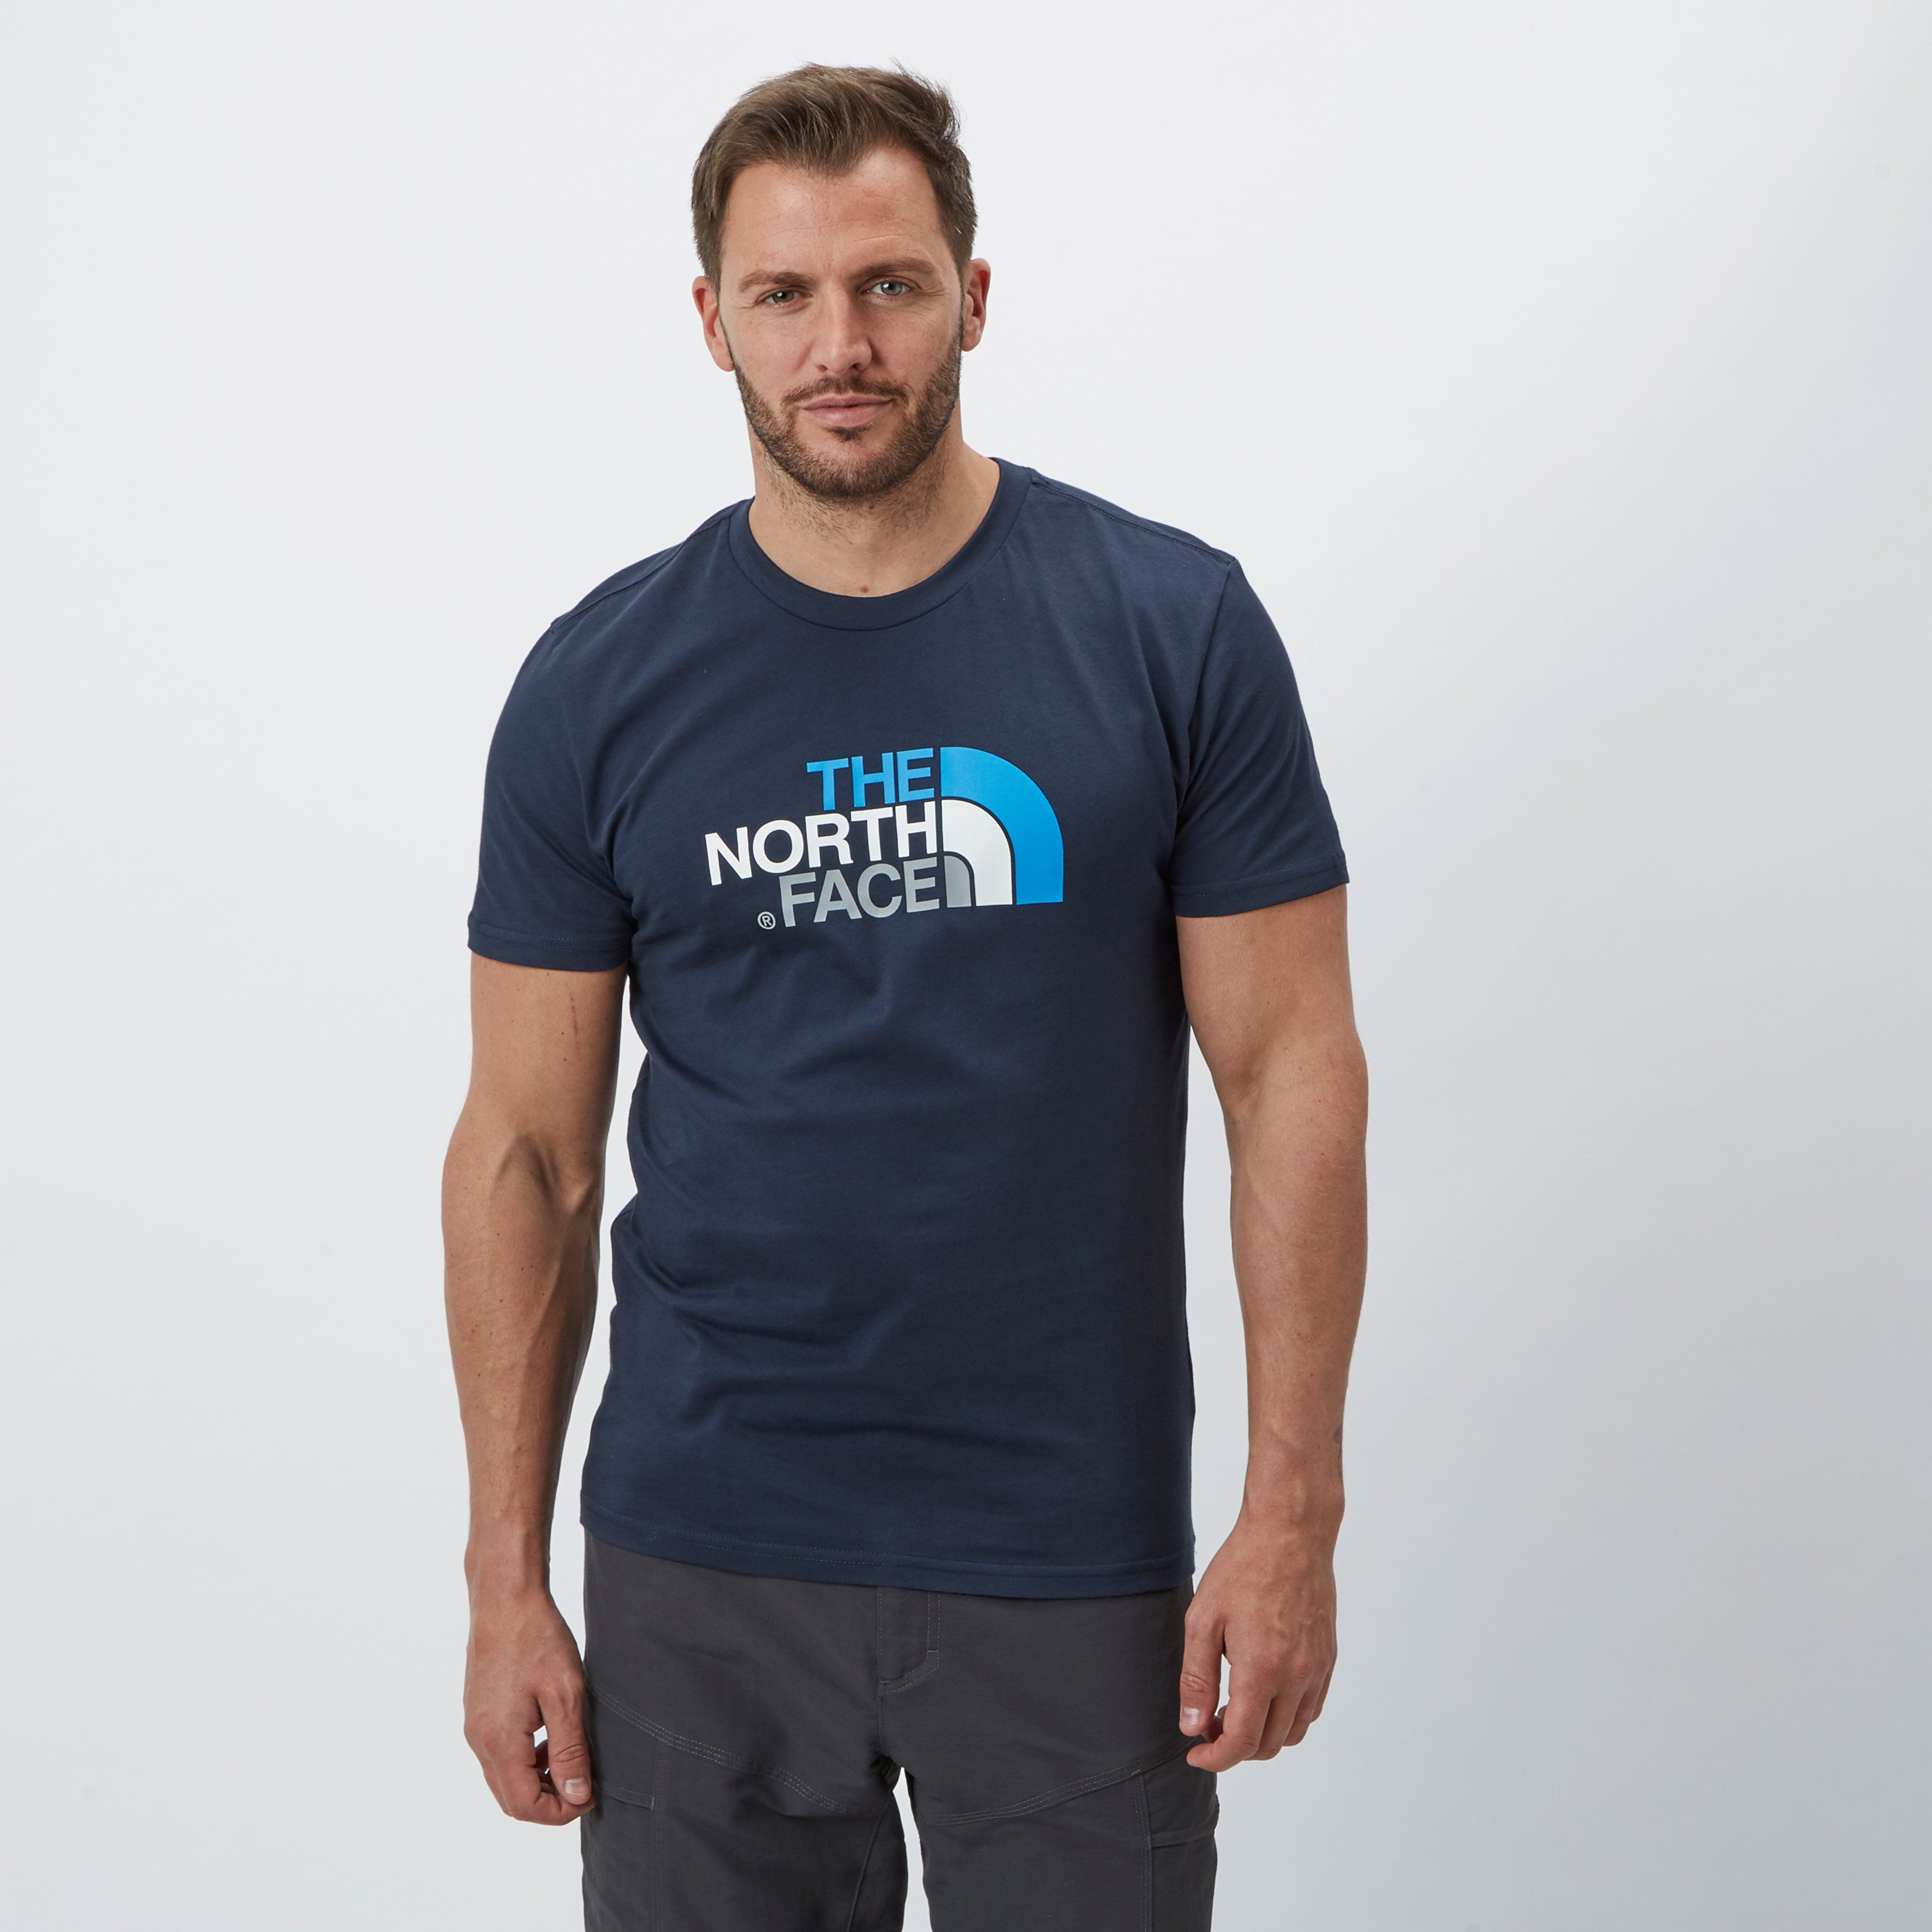 THE NORTH FACE Men's Easy Short Sleeve T-Shirt